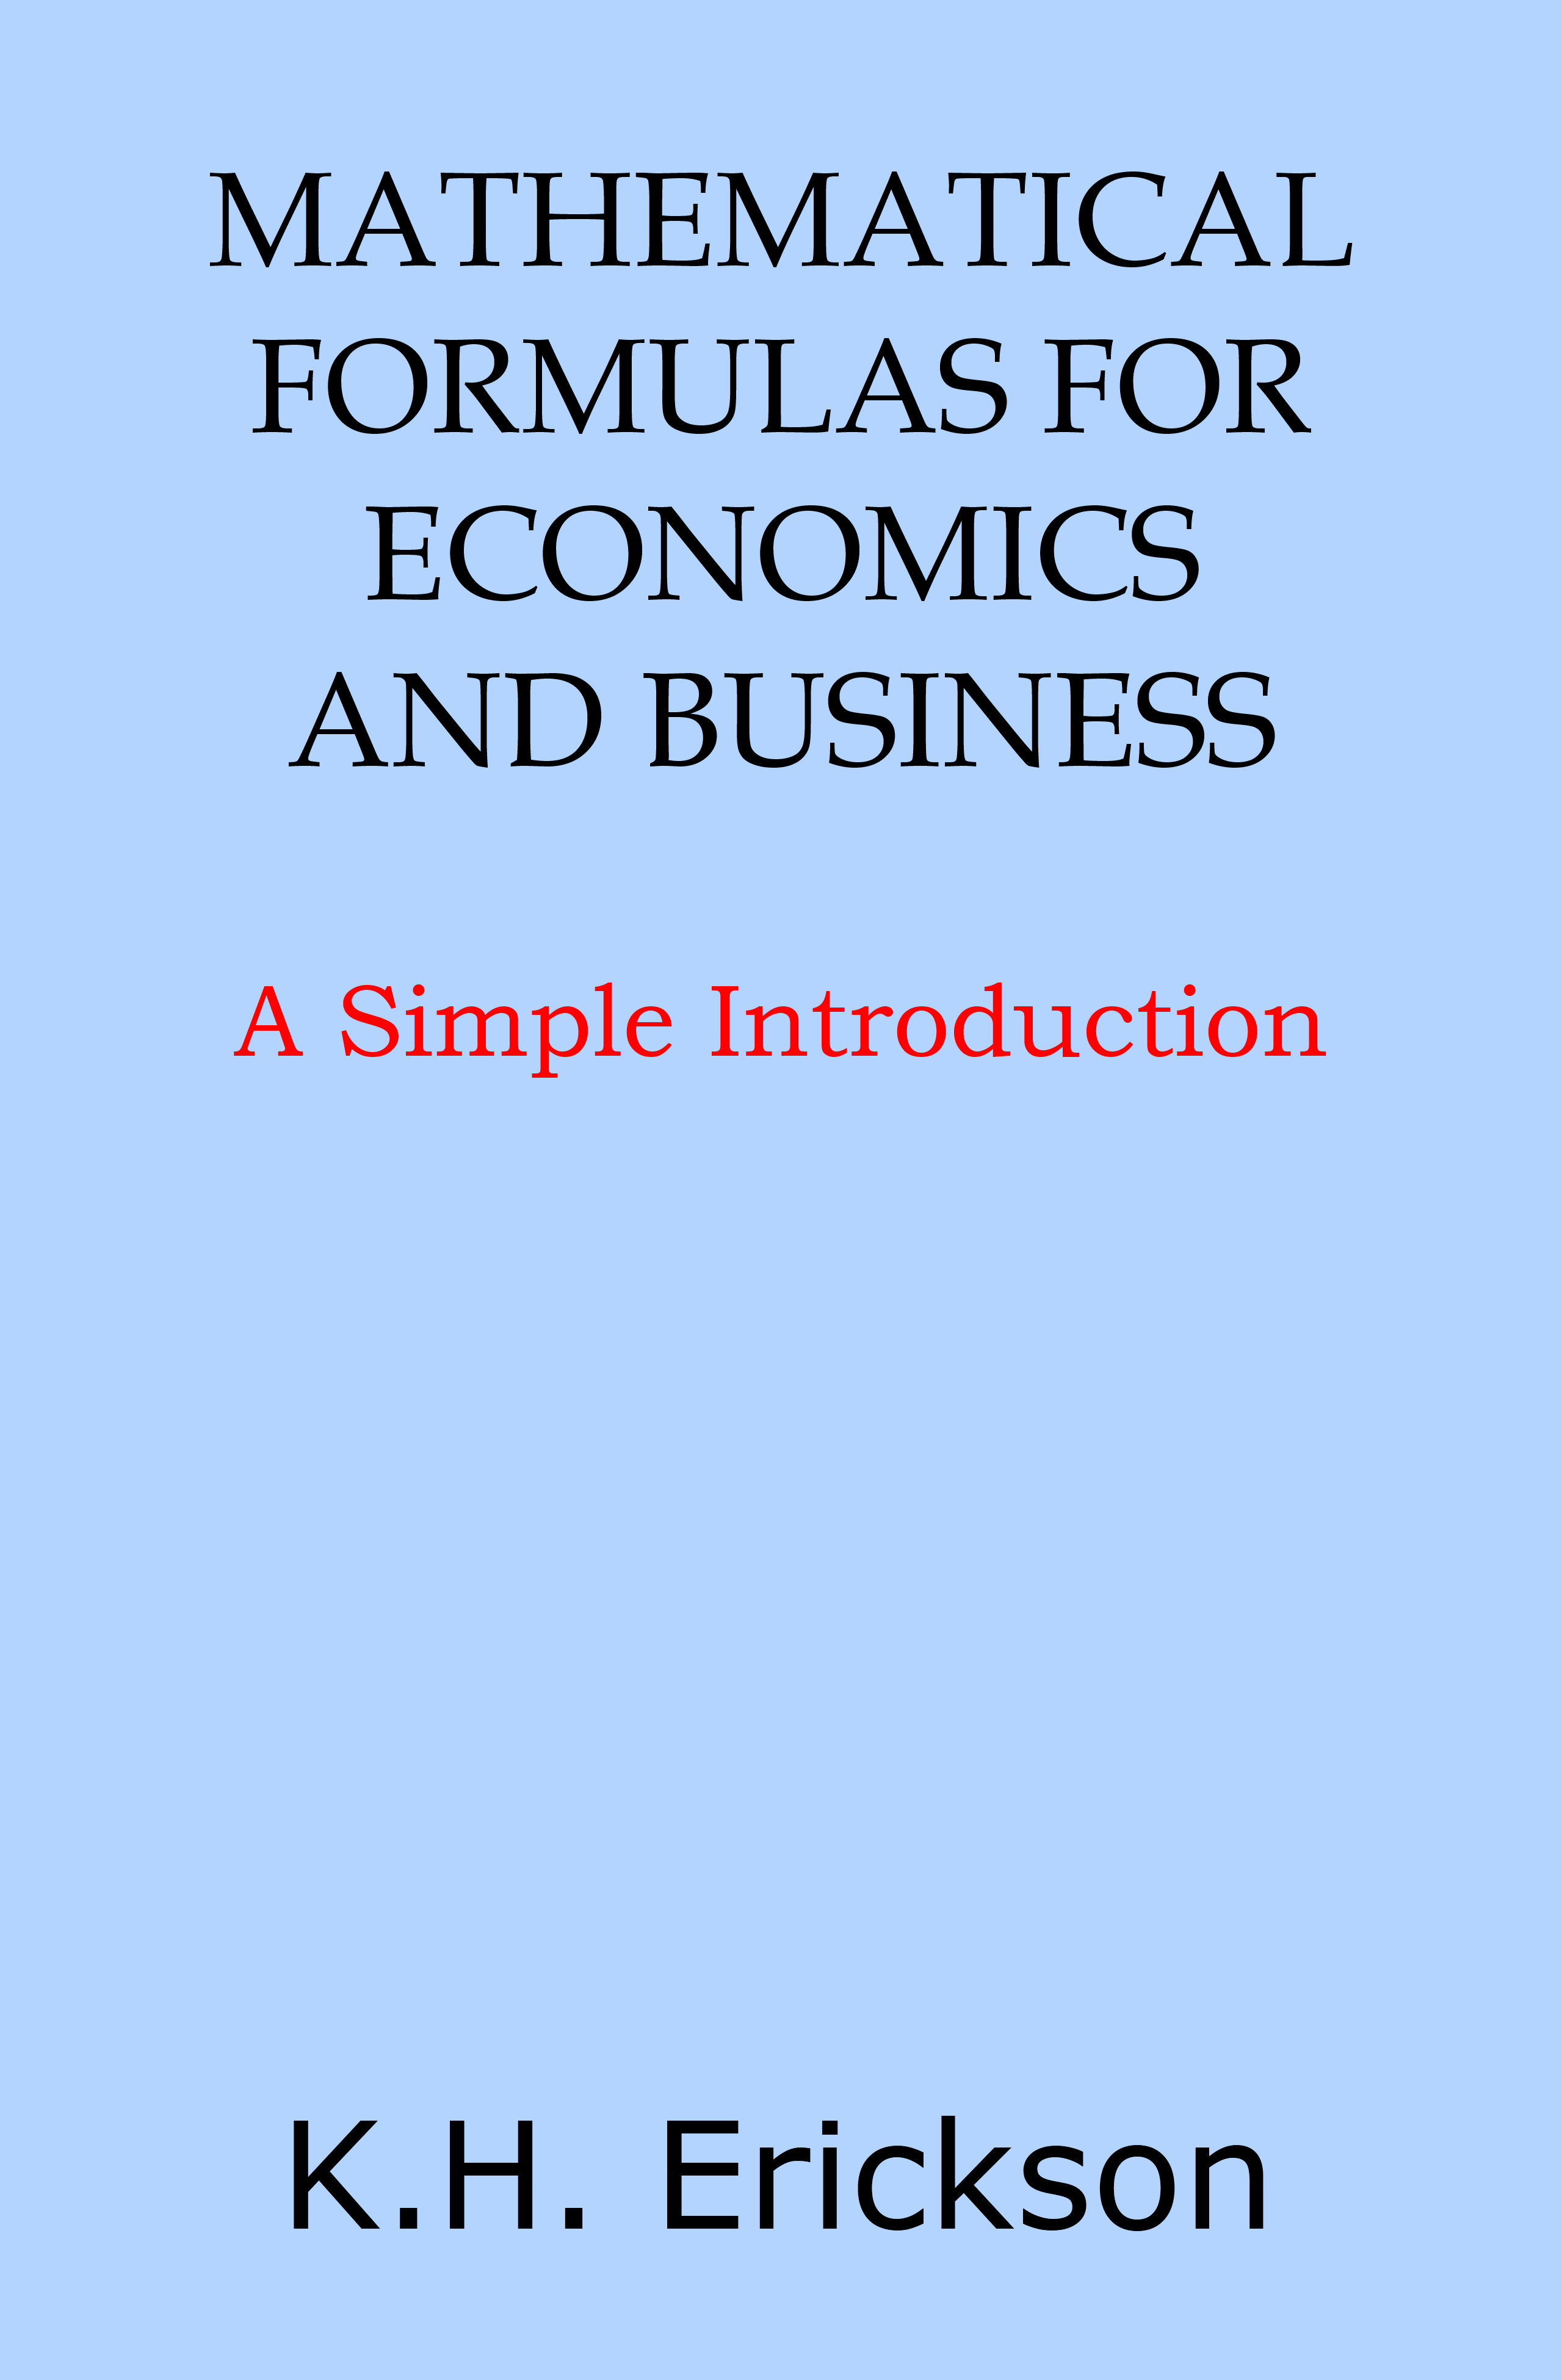 By fetishising mathematical models, economists turned economics into a highly paid pseudoscience